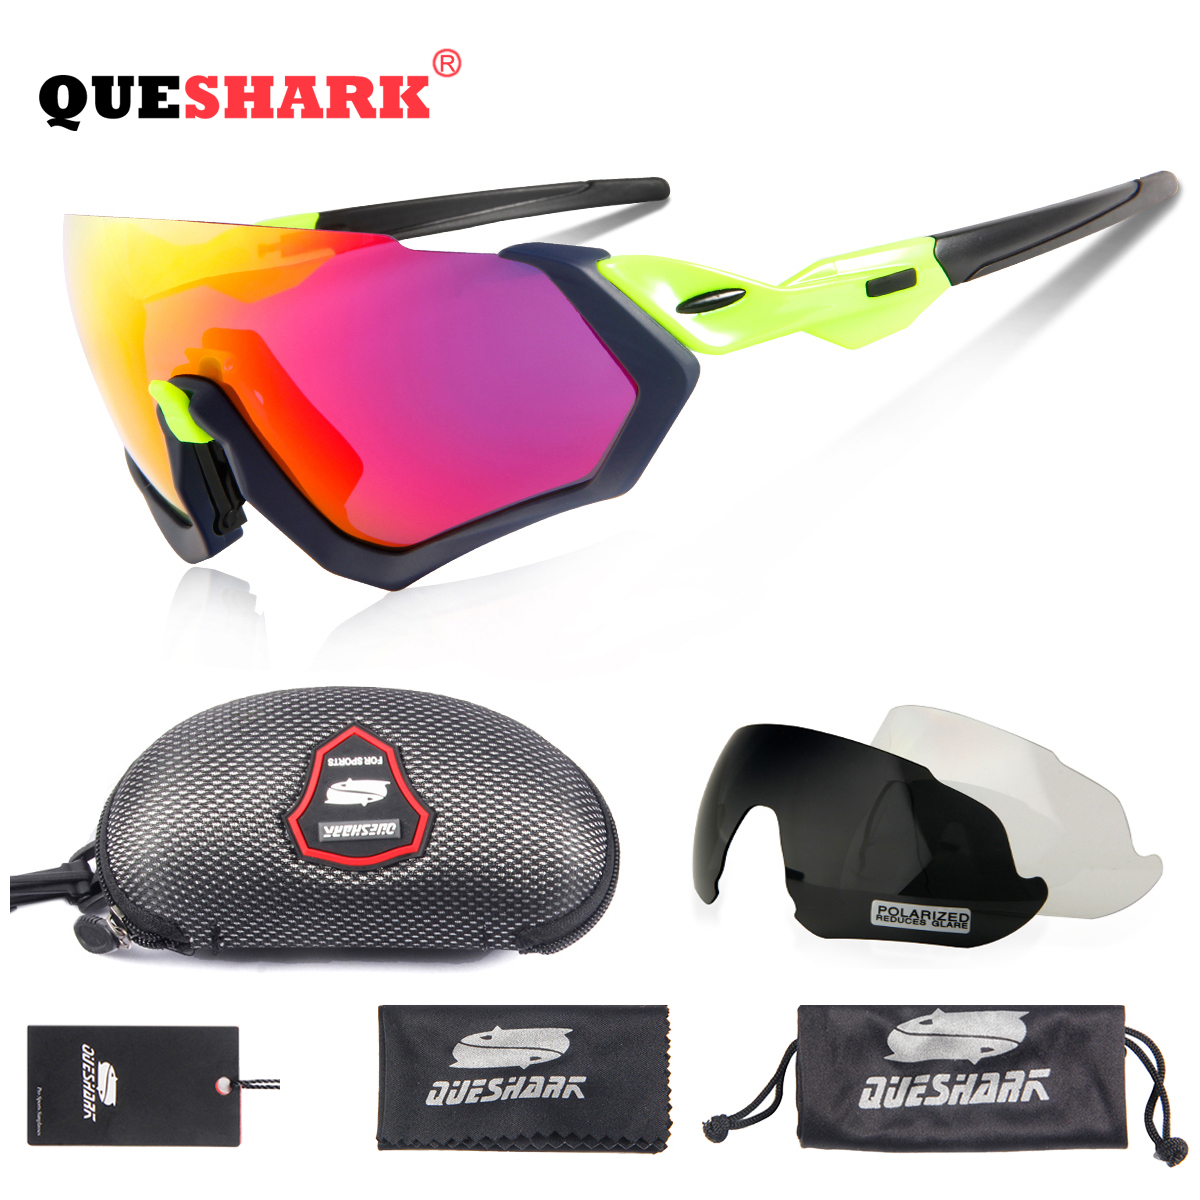 843a1c7cdb Detail Feedback Questions about Queshark Sport Sunglasses Mtb Cycling  Glasses Bike Glasses Men Women Bicycle Goggles Cycling Eyewear 3 Lens  Exchangeable ...